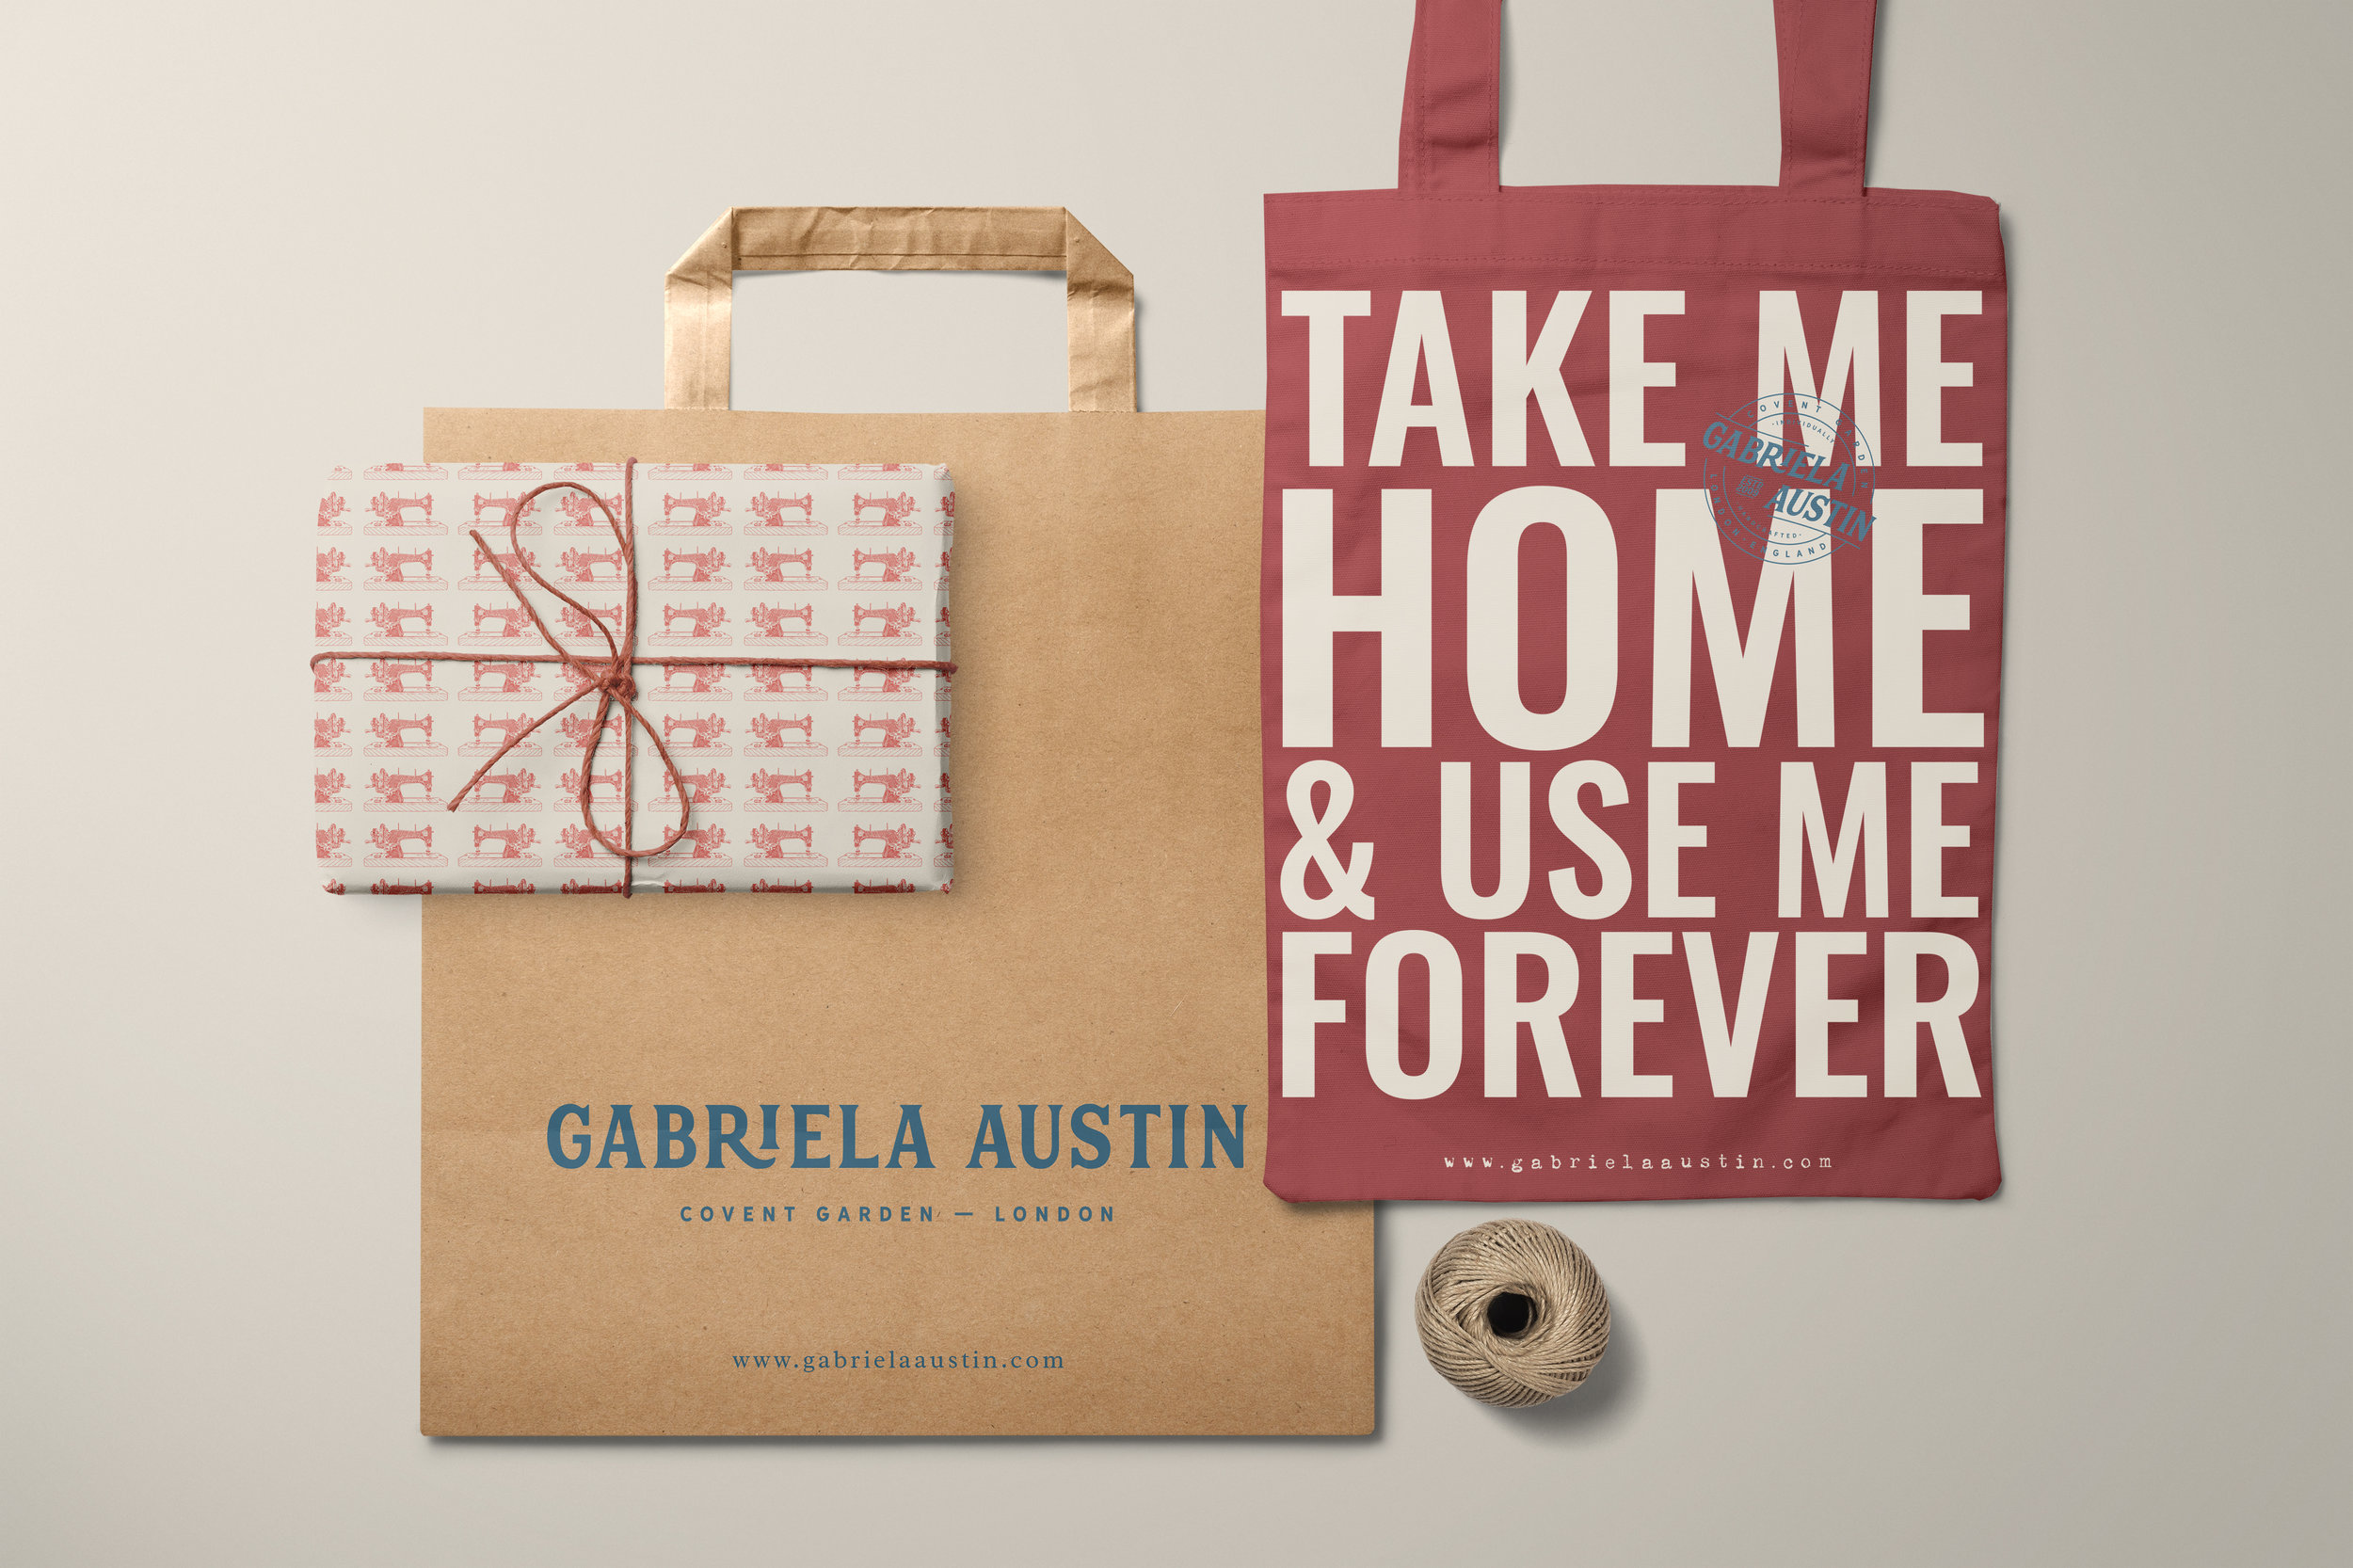 brand identity and logo design for Gabriela Austin, small business branding by Ditto Creative, boutique branding agency in Kent